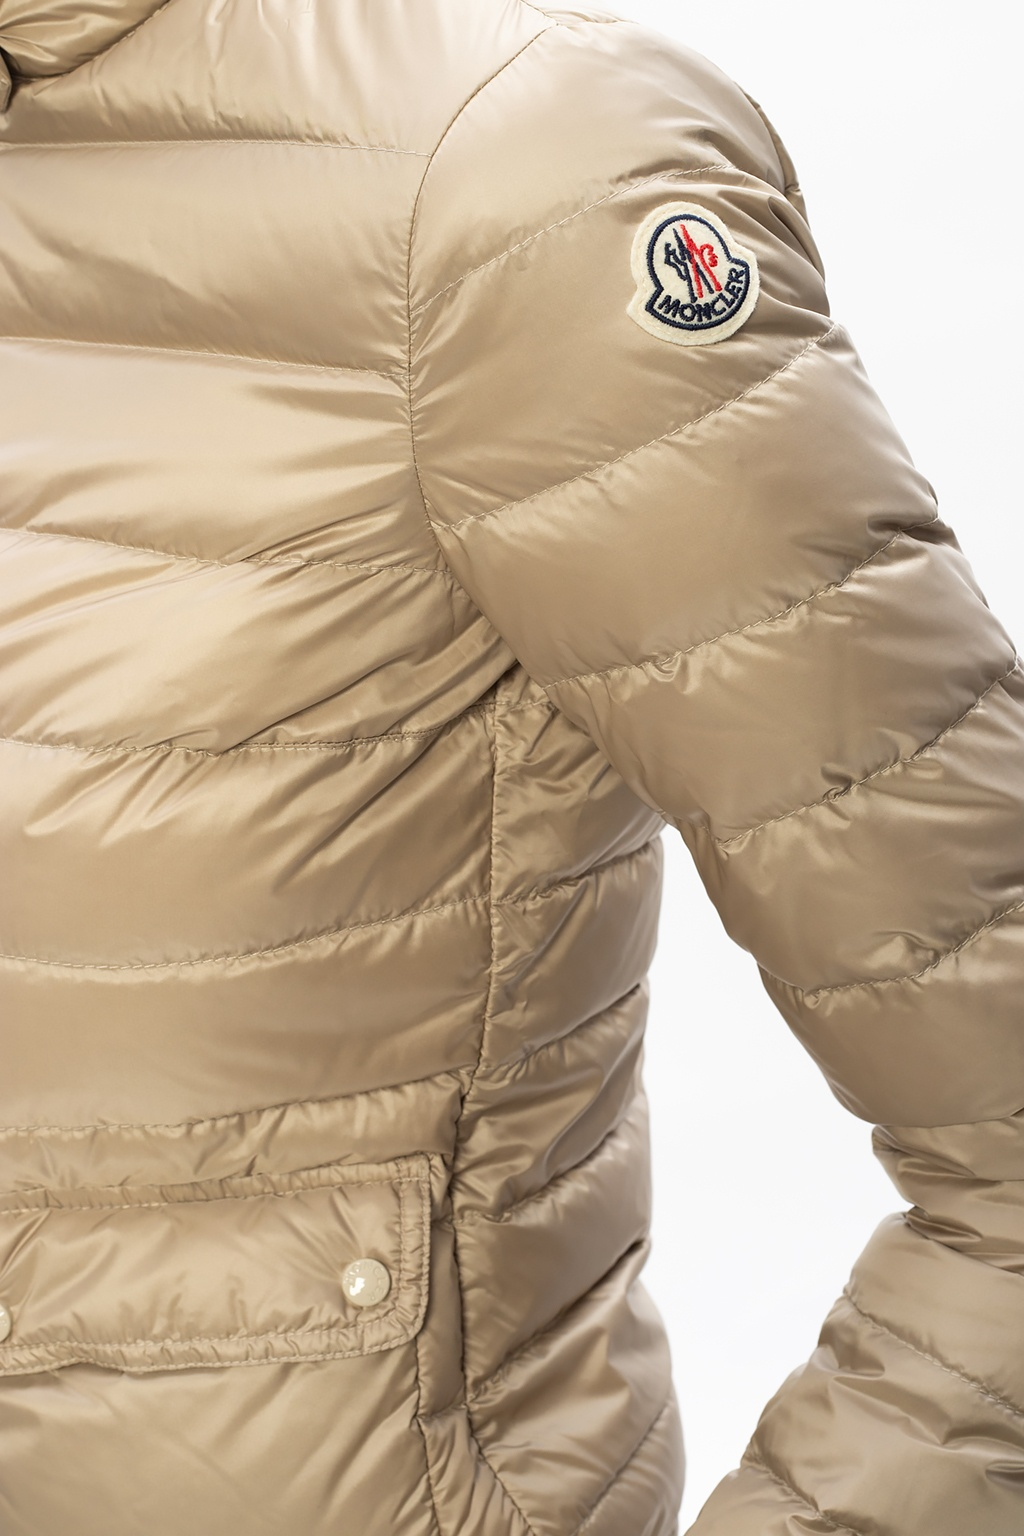 Moncler 'O' 'Lans' quilted jacket